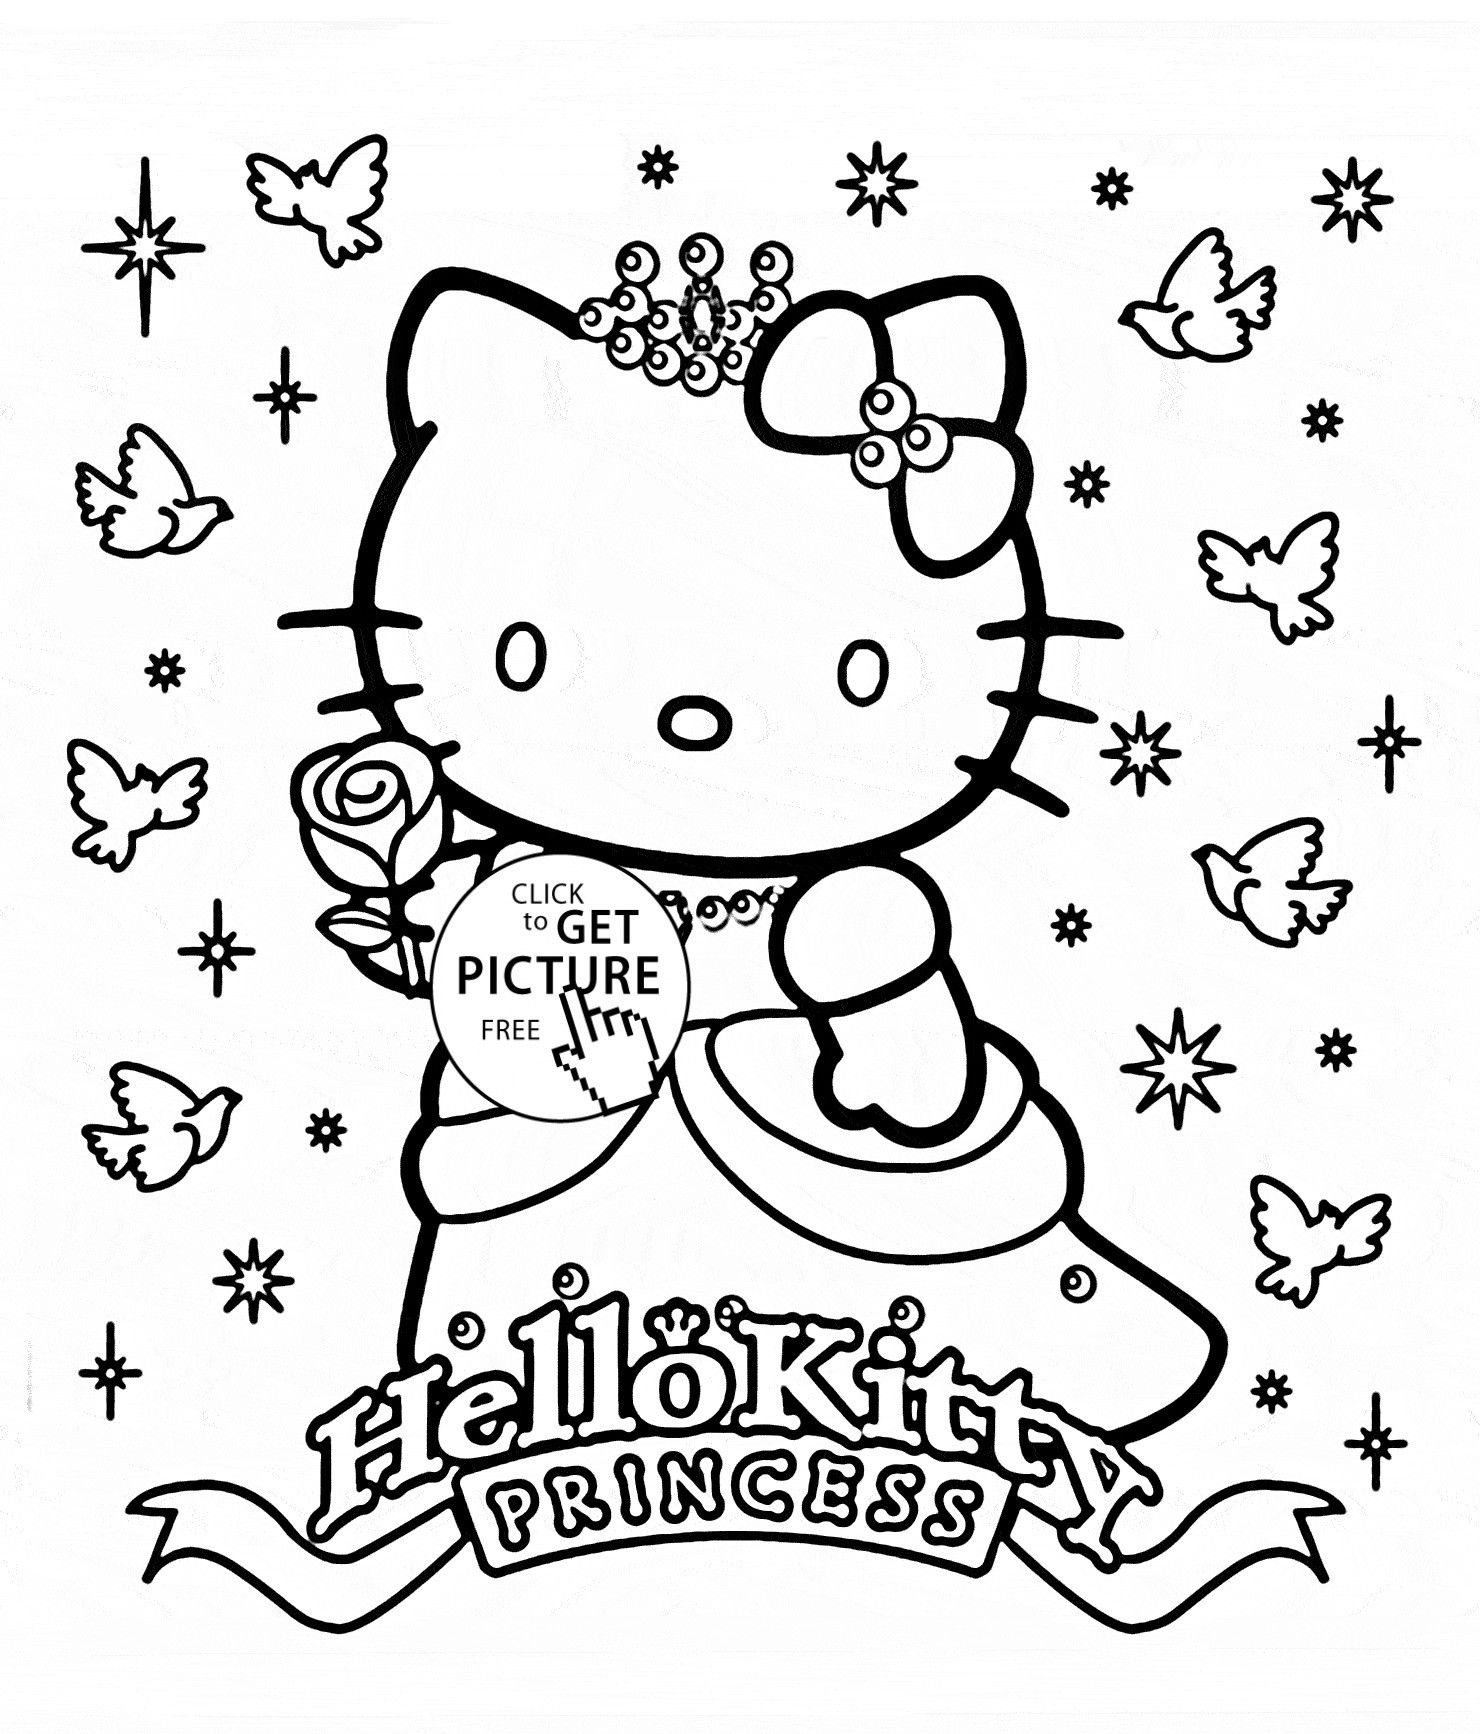 hello kitty coloring pages that you can print printable hello kitty coloring pages coloring pages for free coloring hello print kitty can that pages you